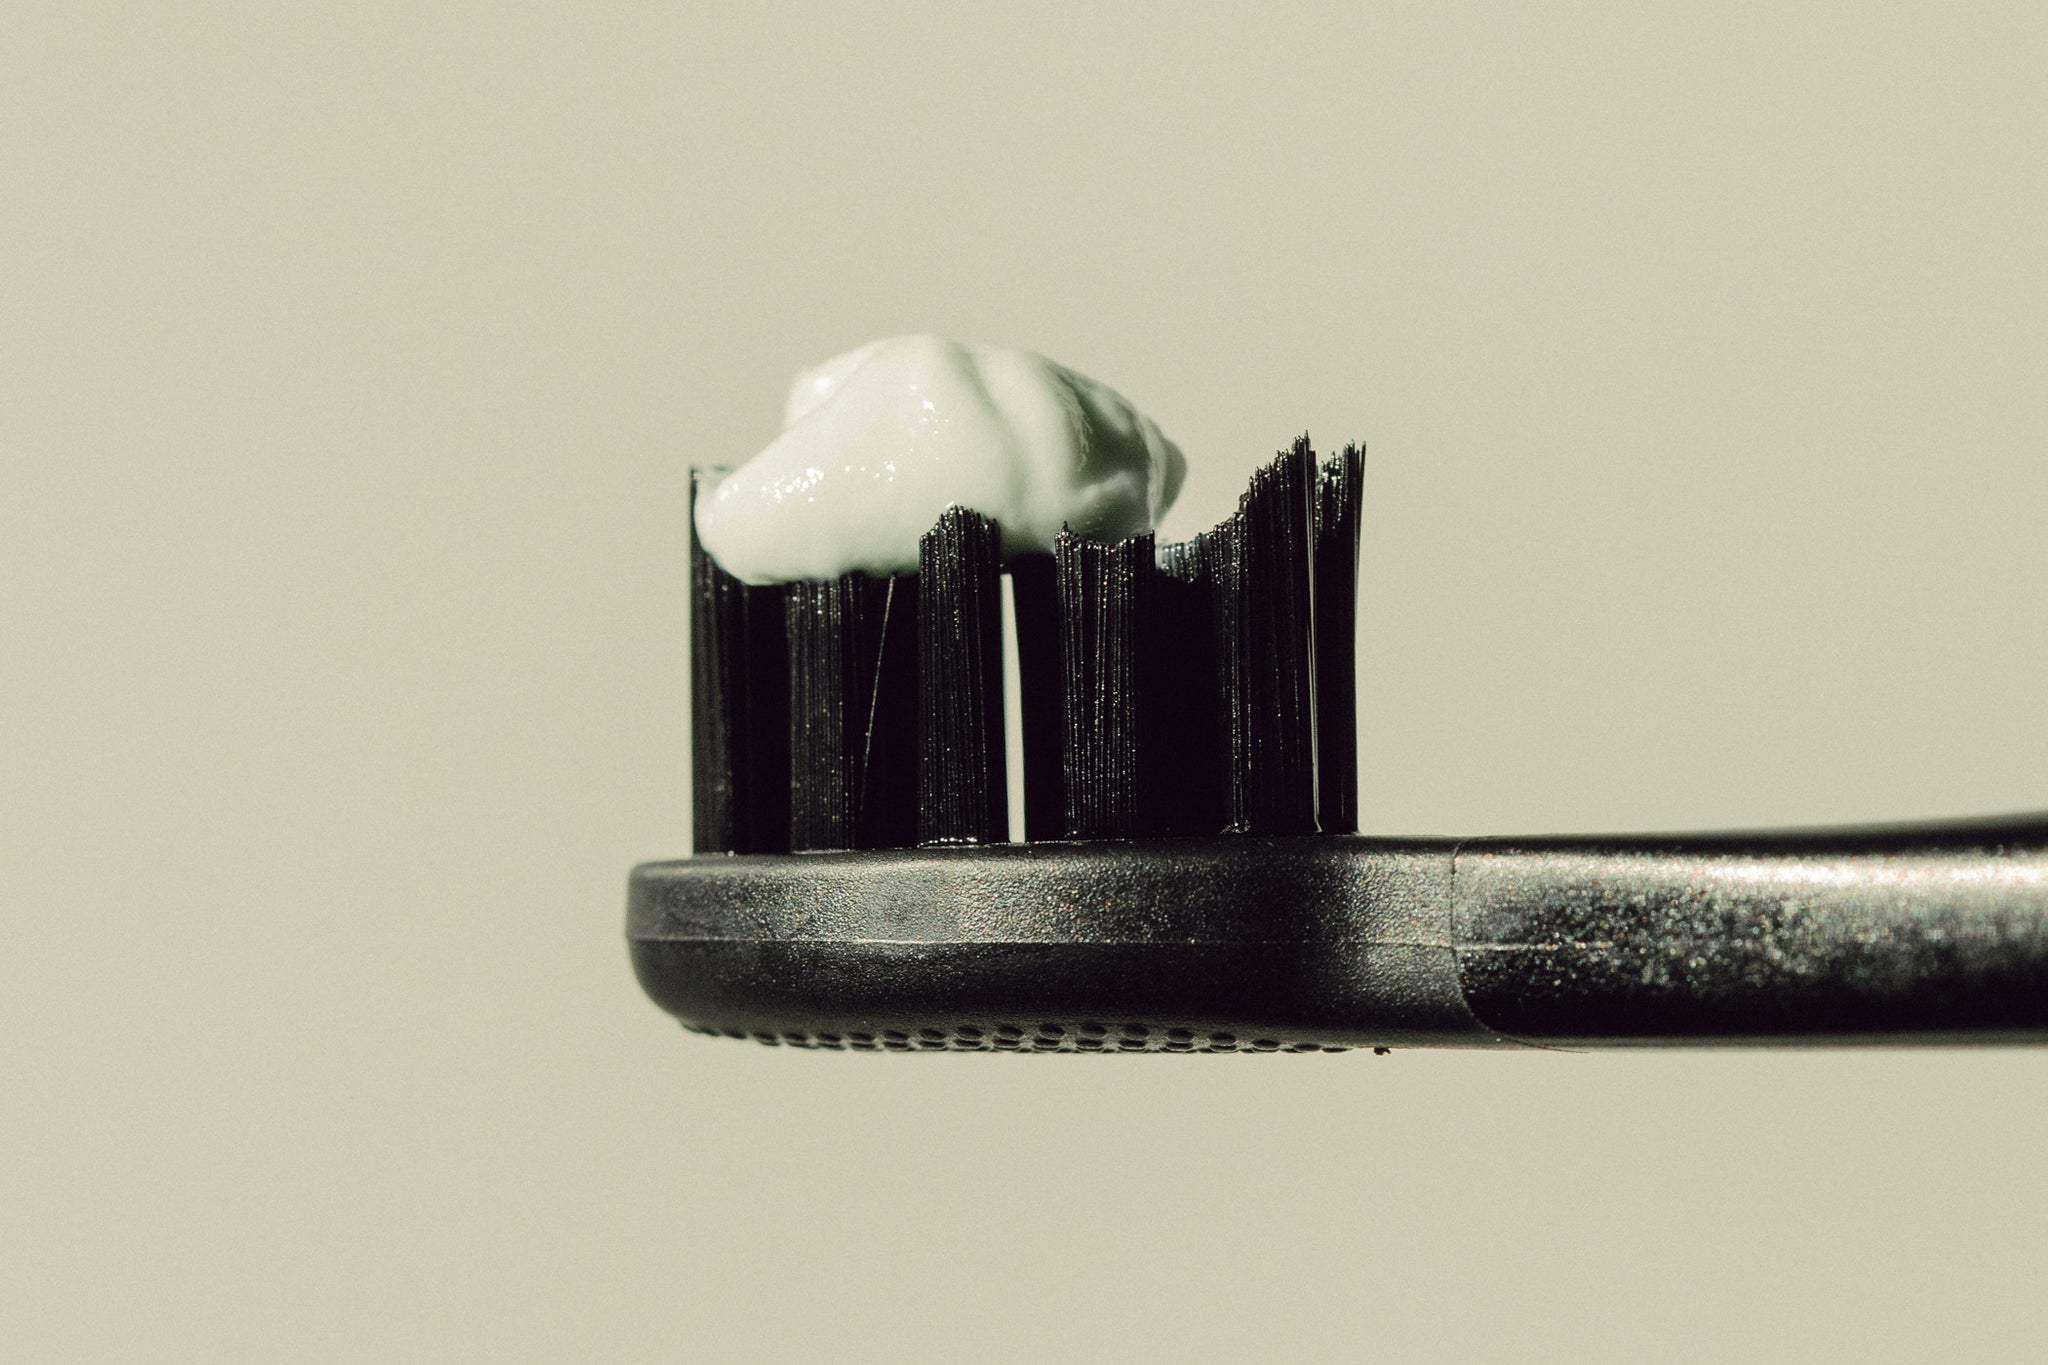 How To Brush Your Teeth: Top 7 Mistakes